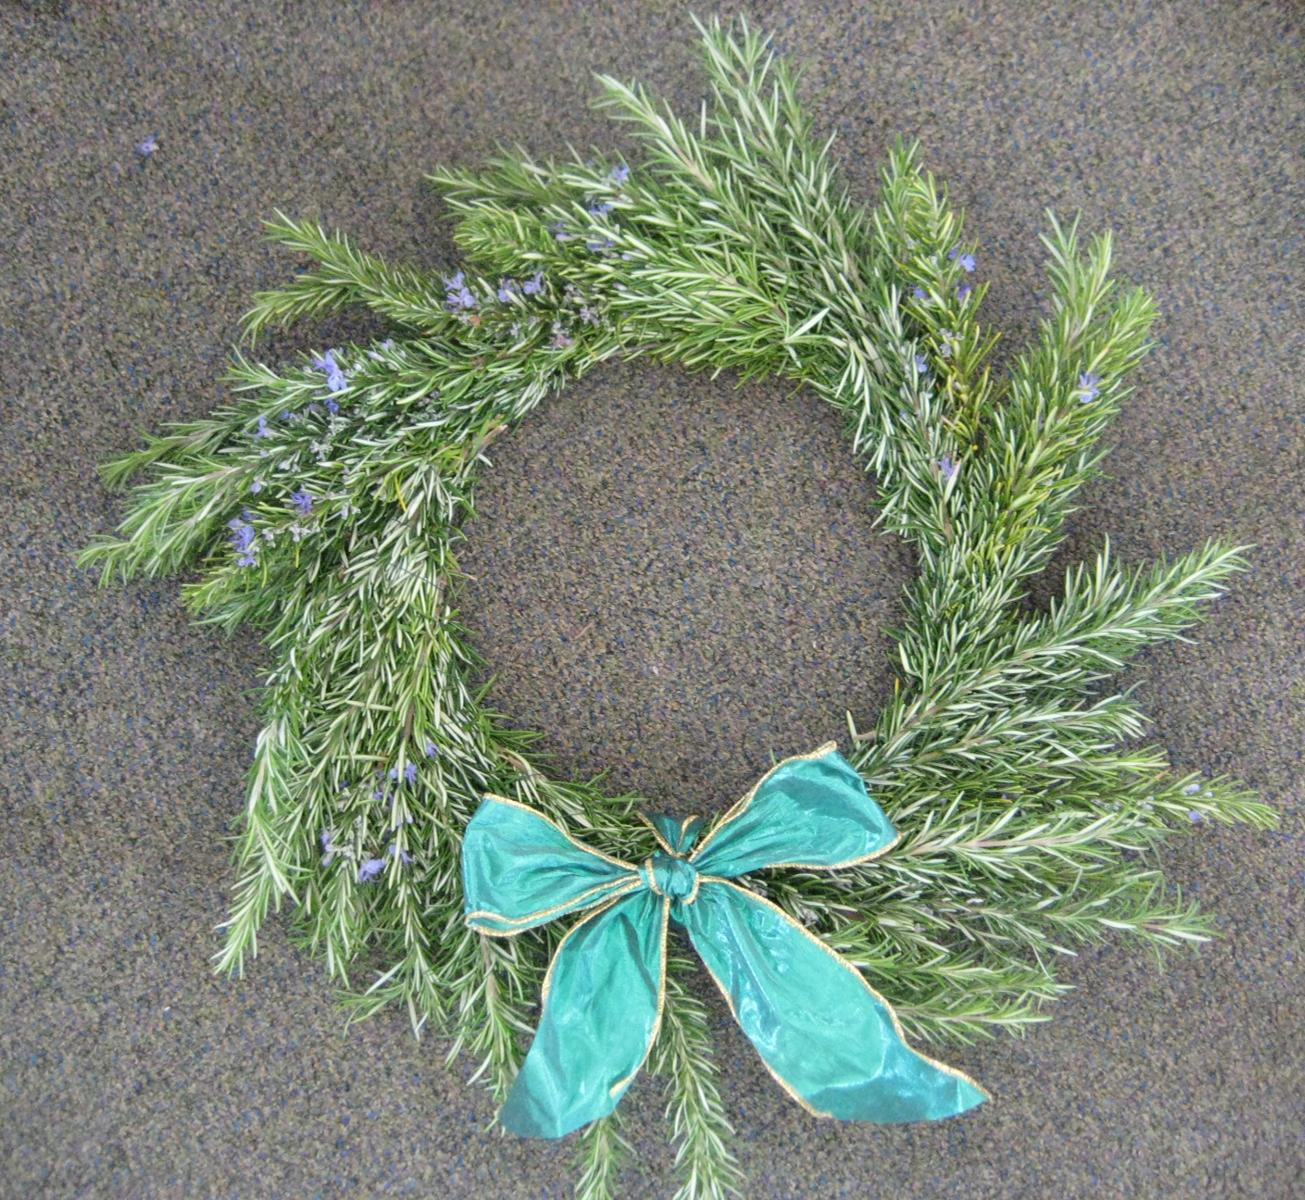 Growing Tables: Support Crescent Elk students, buy a rosemary wreath!